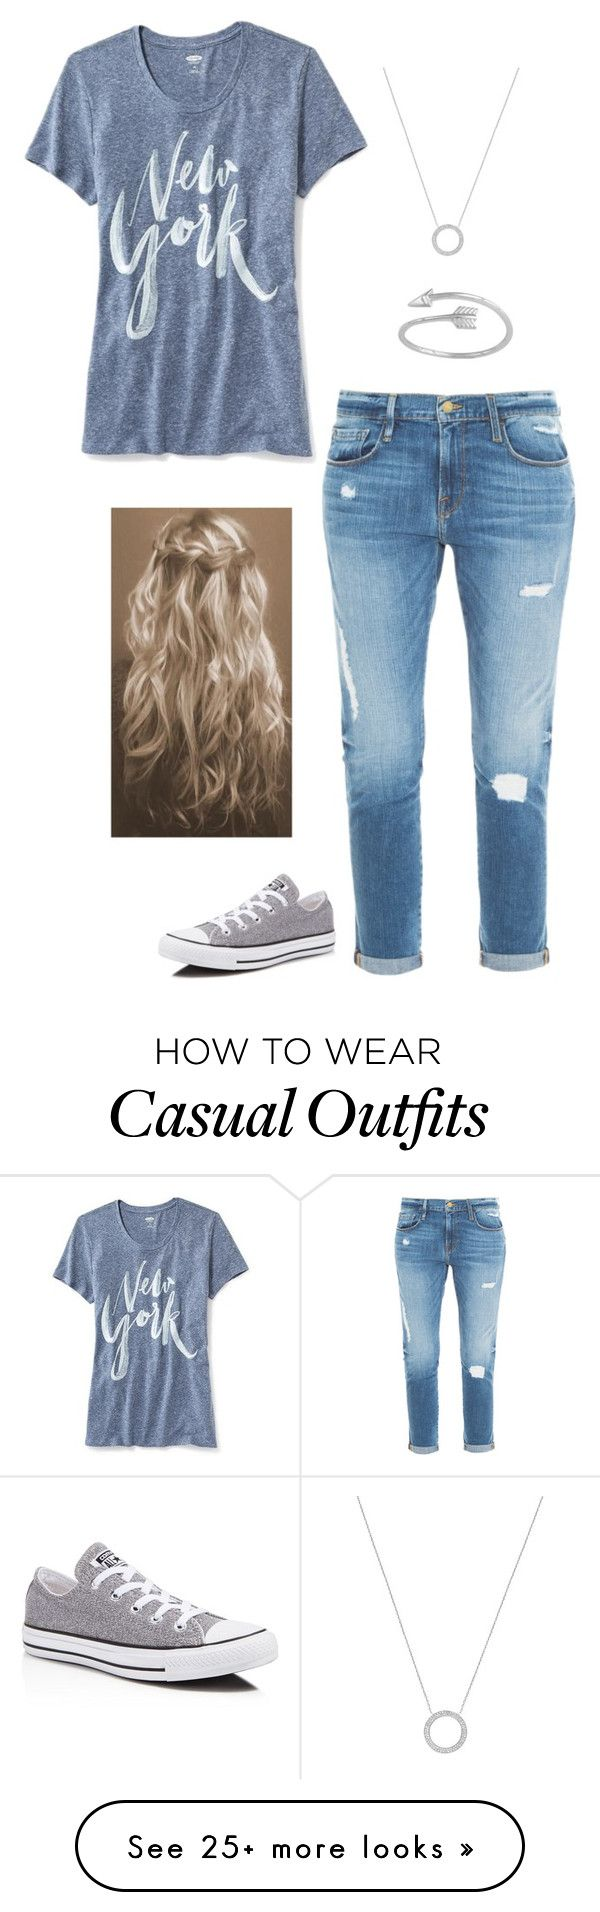 """Casual"" by flawless-gilinsky on Polyvore featuring Old Navy, Frame Denim, Converse and Michael Kors"